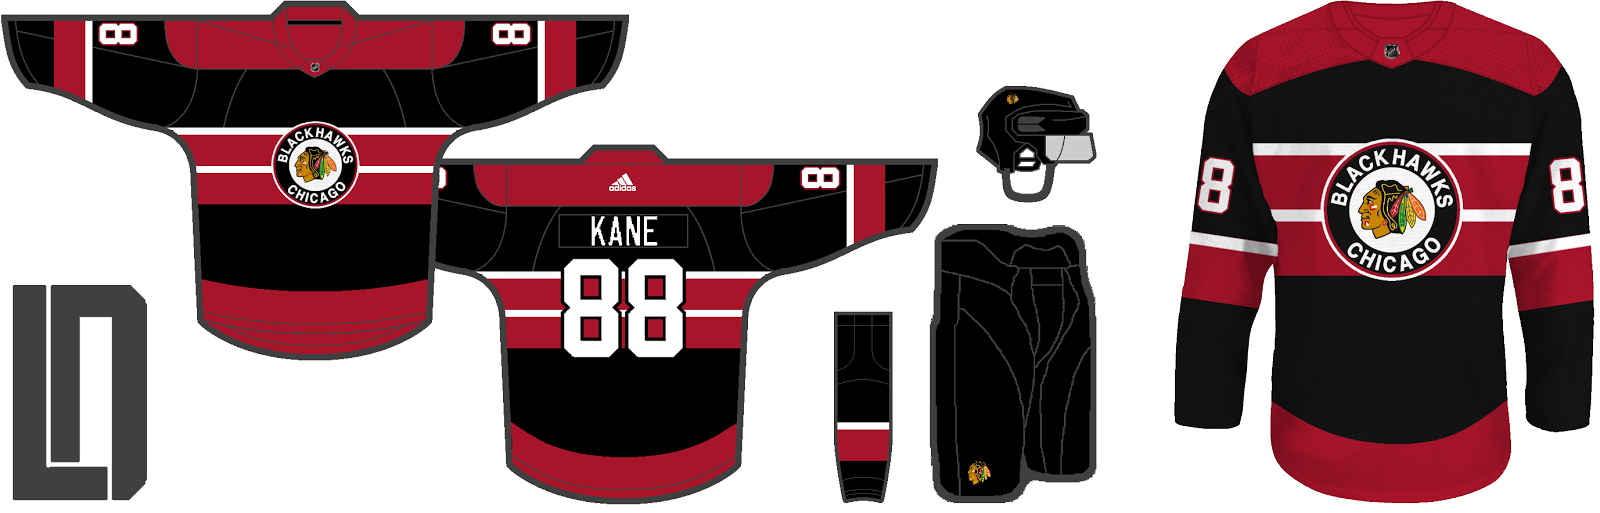 Chicago+Blackhawks+Concept.png